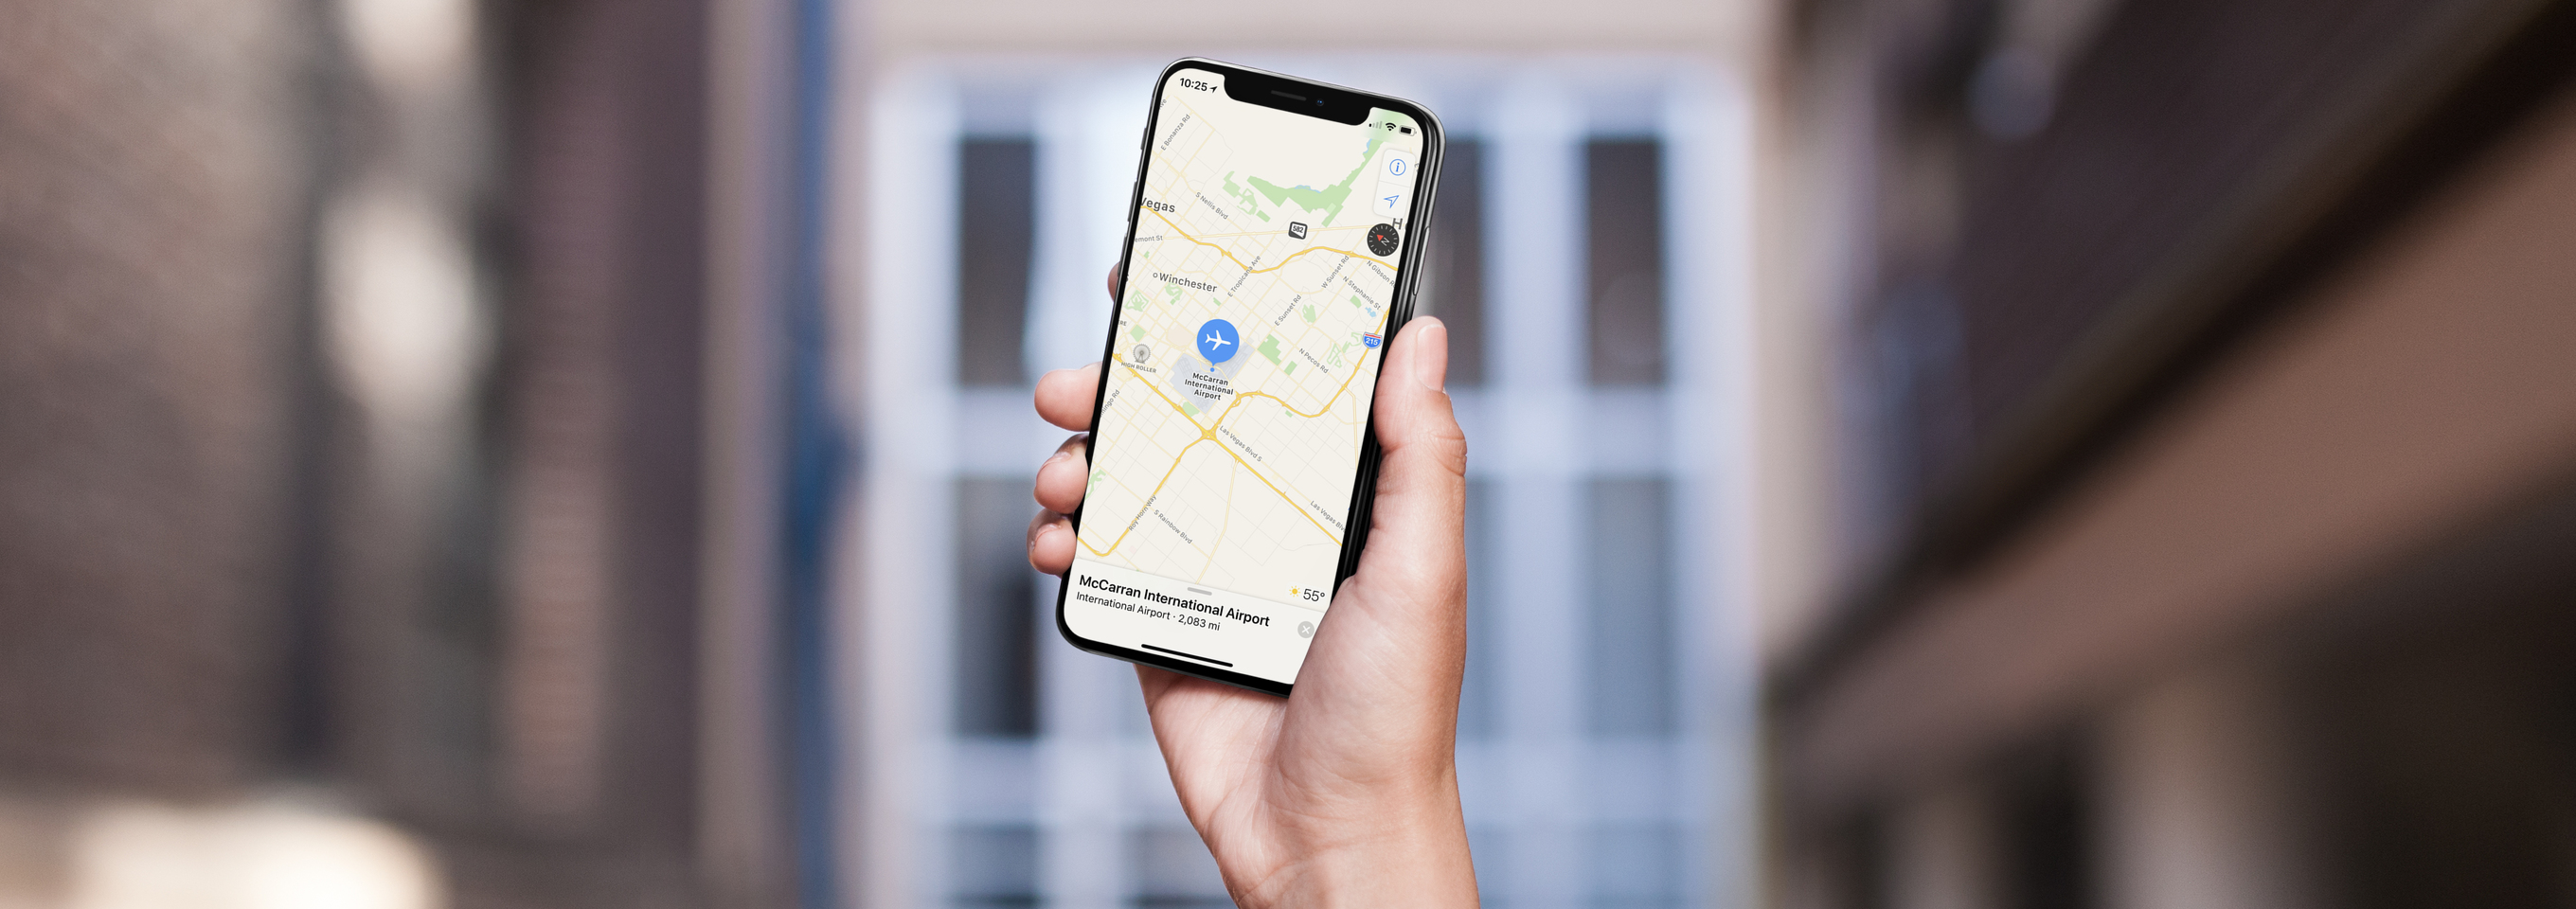 Apple's Finally Making Indoor Maps a Reality in iOS 11